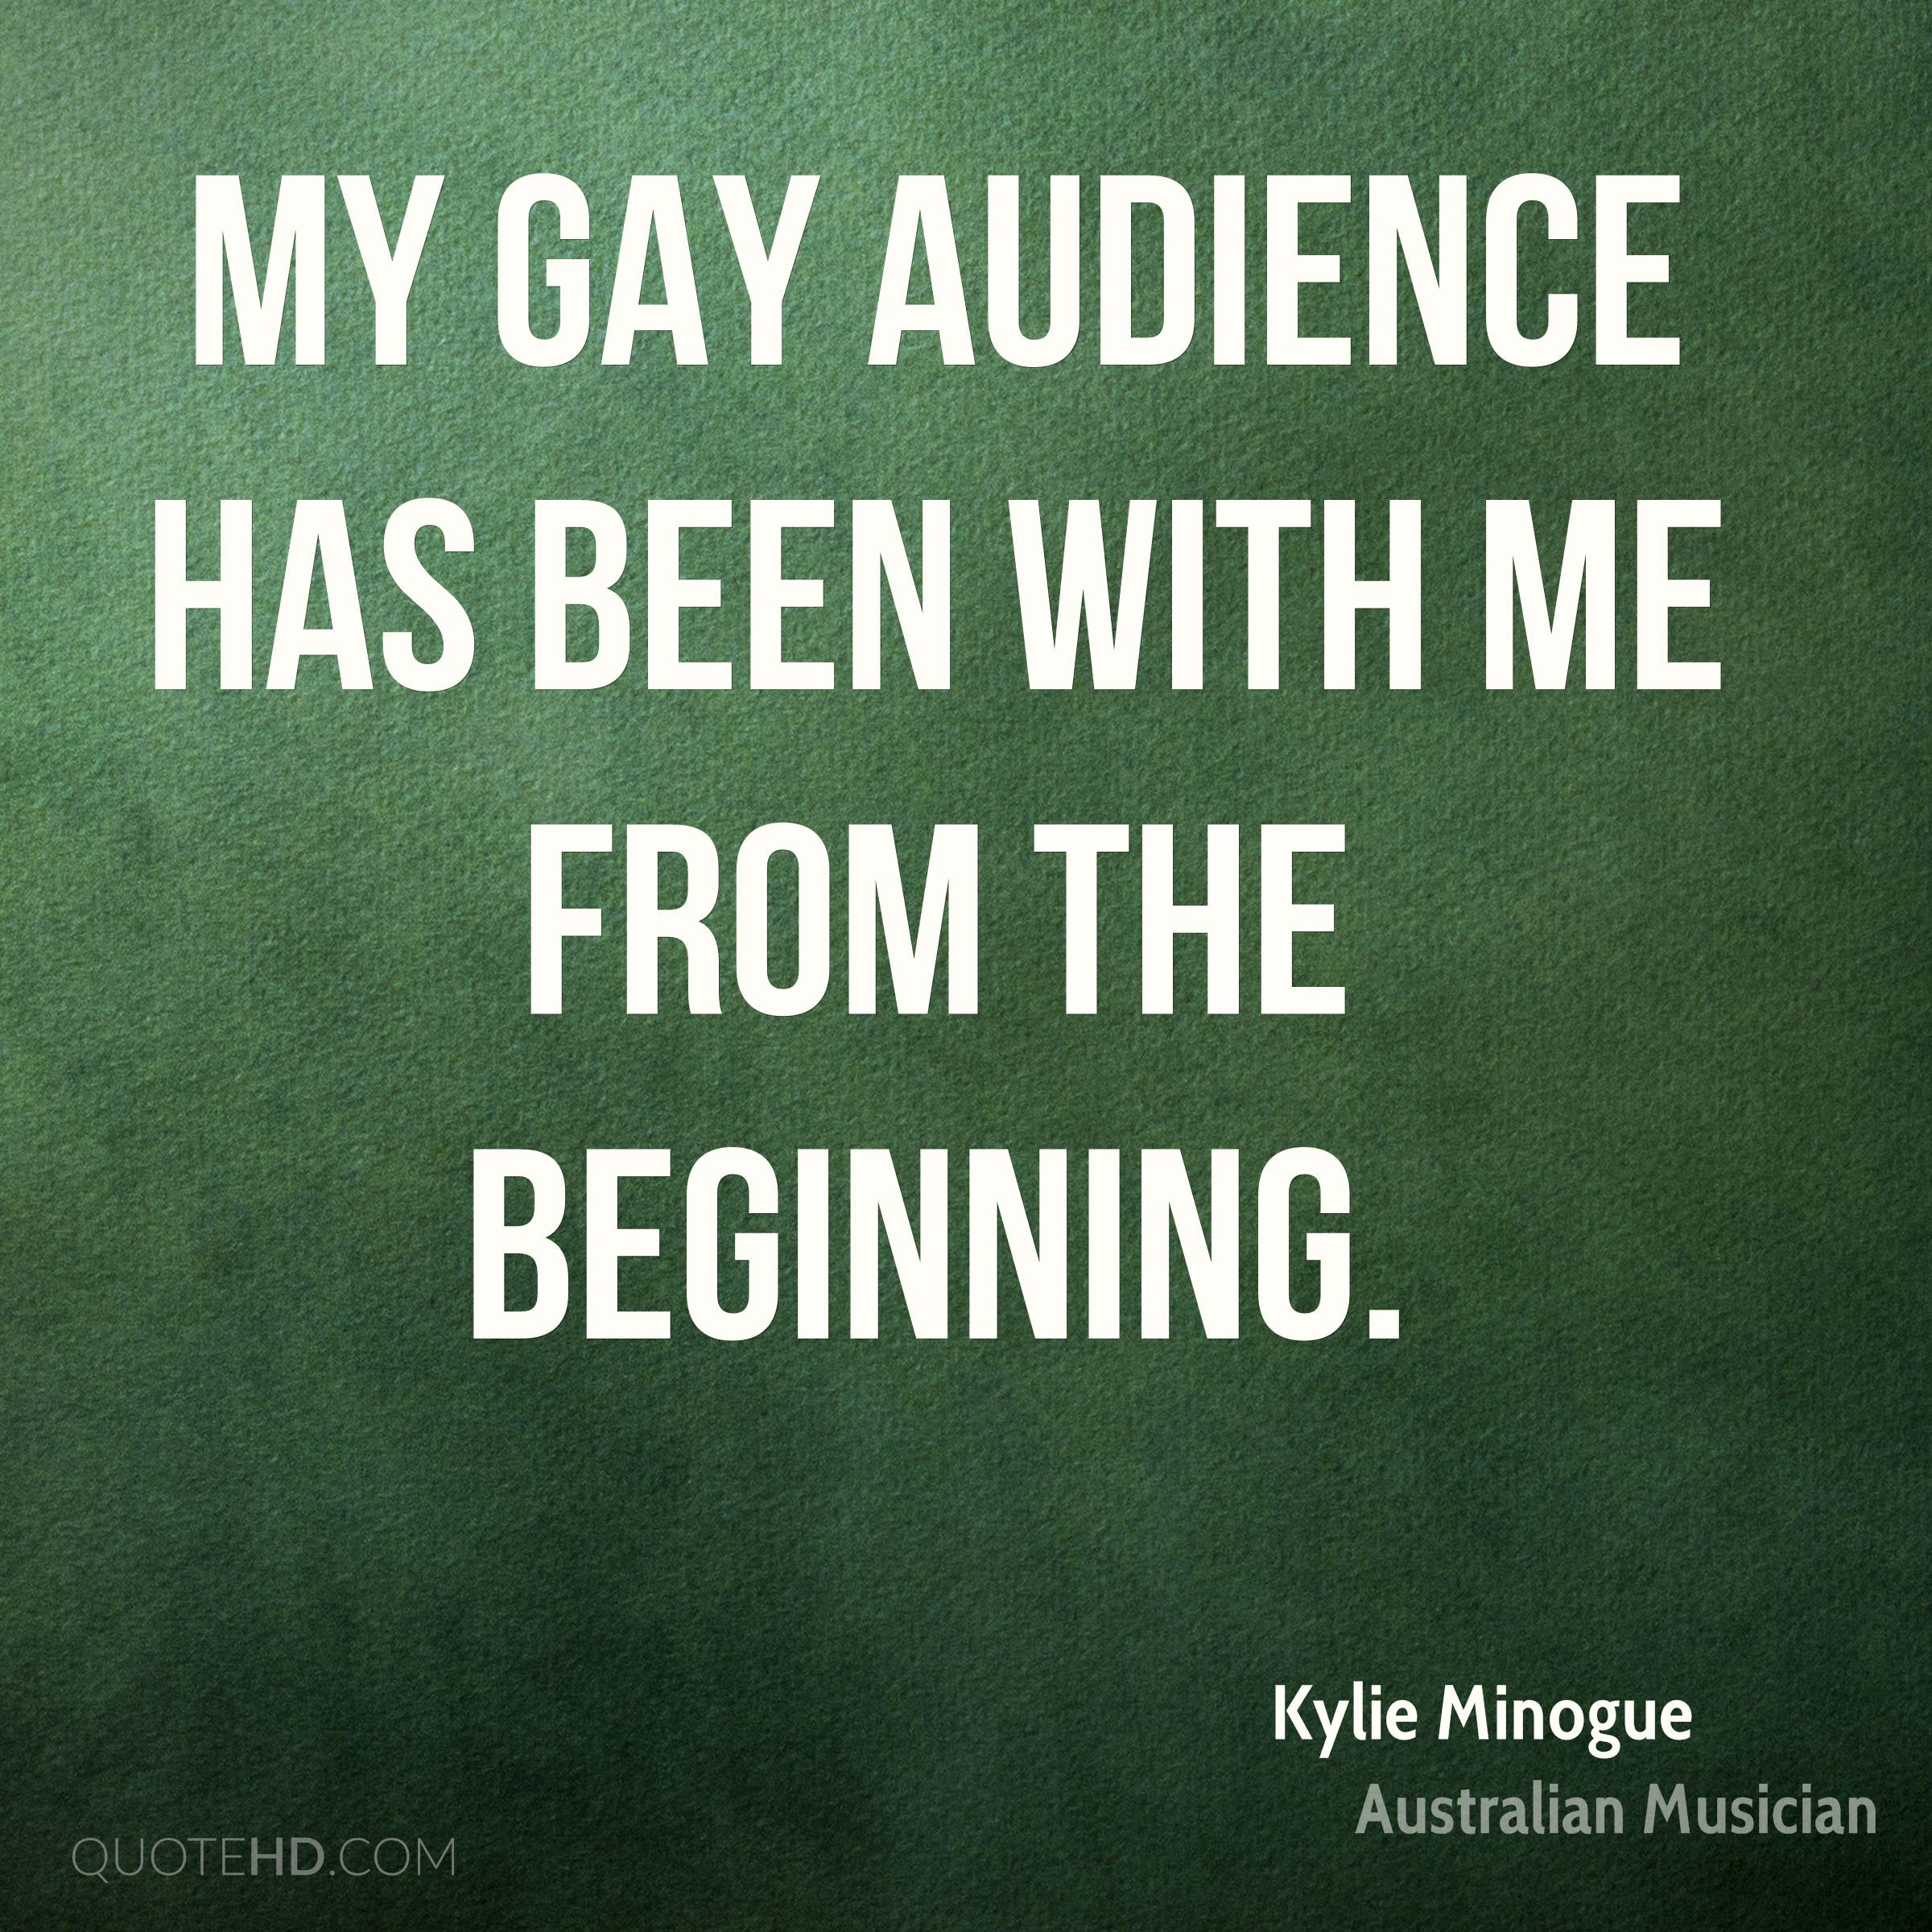 My gay audience has been with me from the beginning.